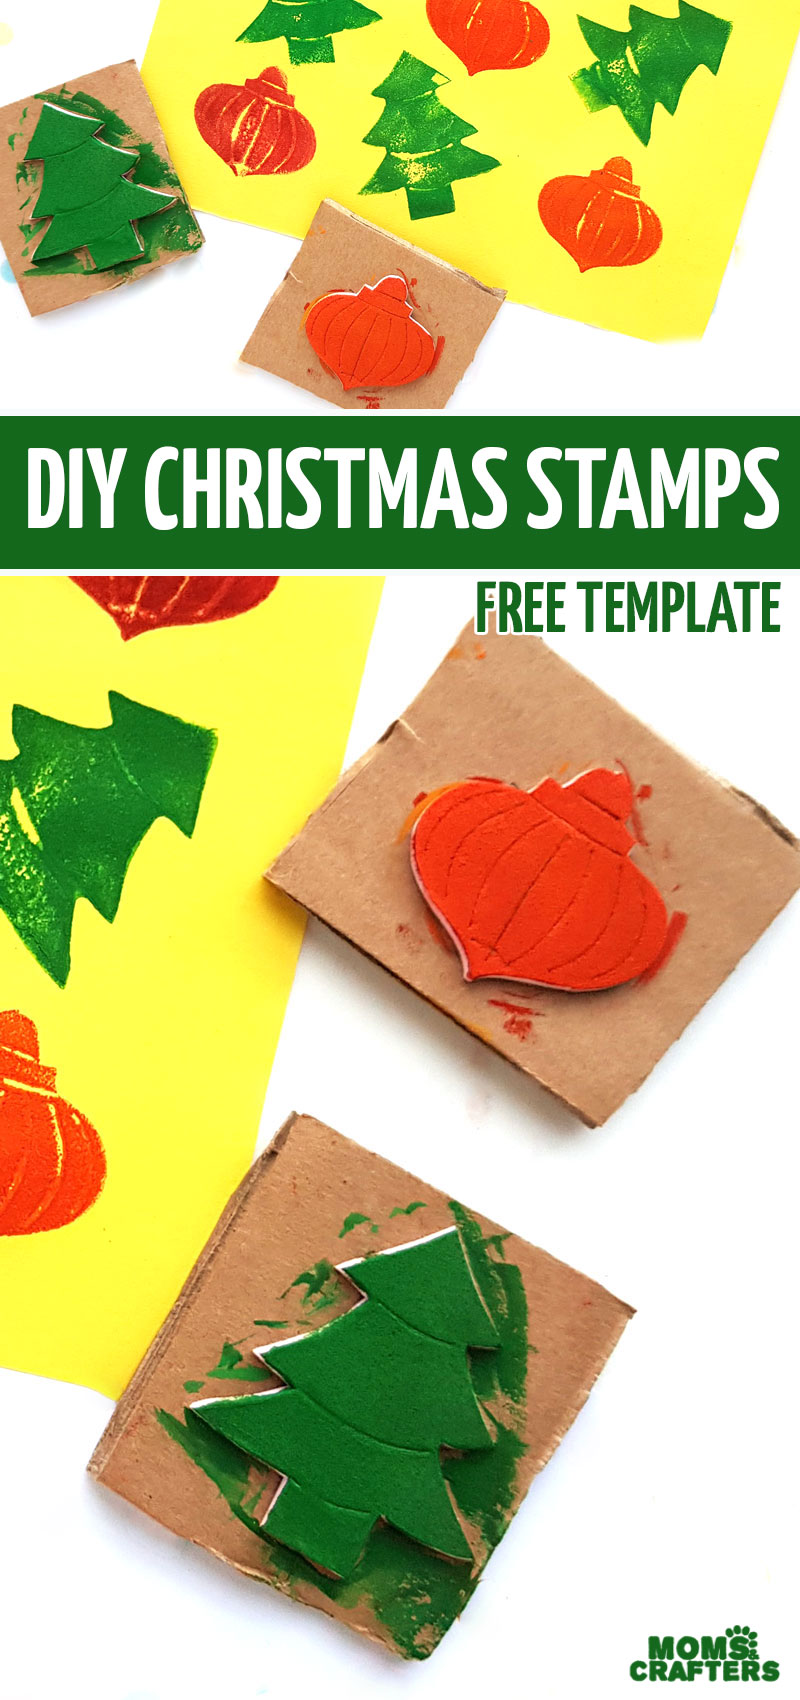 Craft your own upcycled DIY Christmas stamps with this easy Christmas craft for kids. Great for preschool and toddler Christmas crafting too!